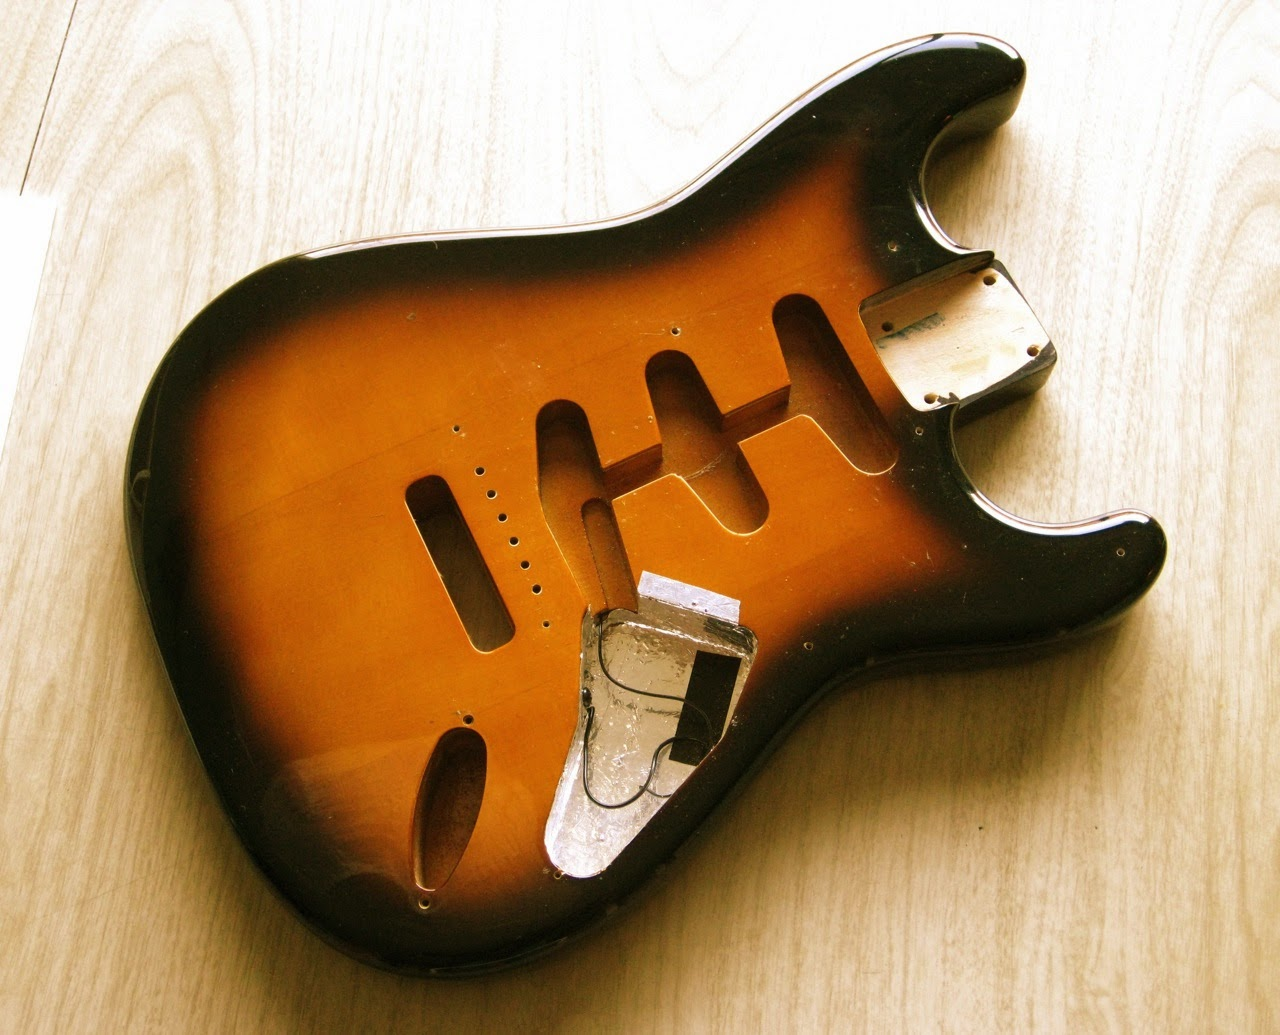 two color sunburst, Strat, alder, wood, MIJ, custom, Partsocaster, custom, project